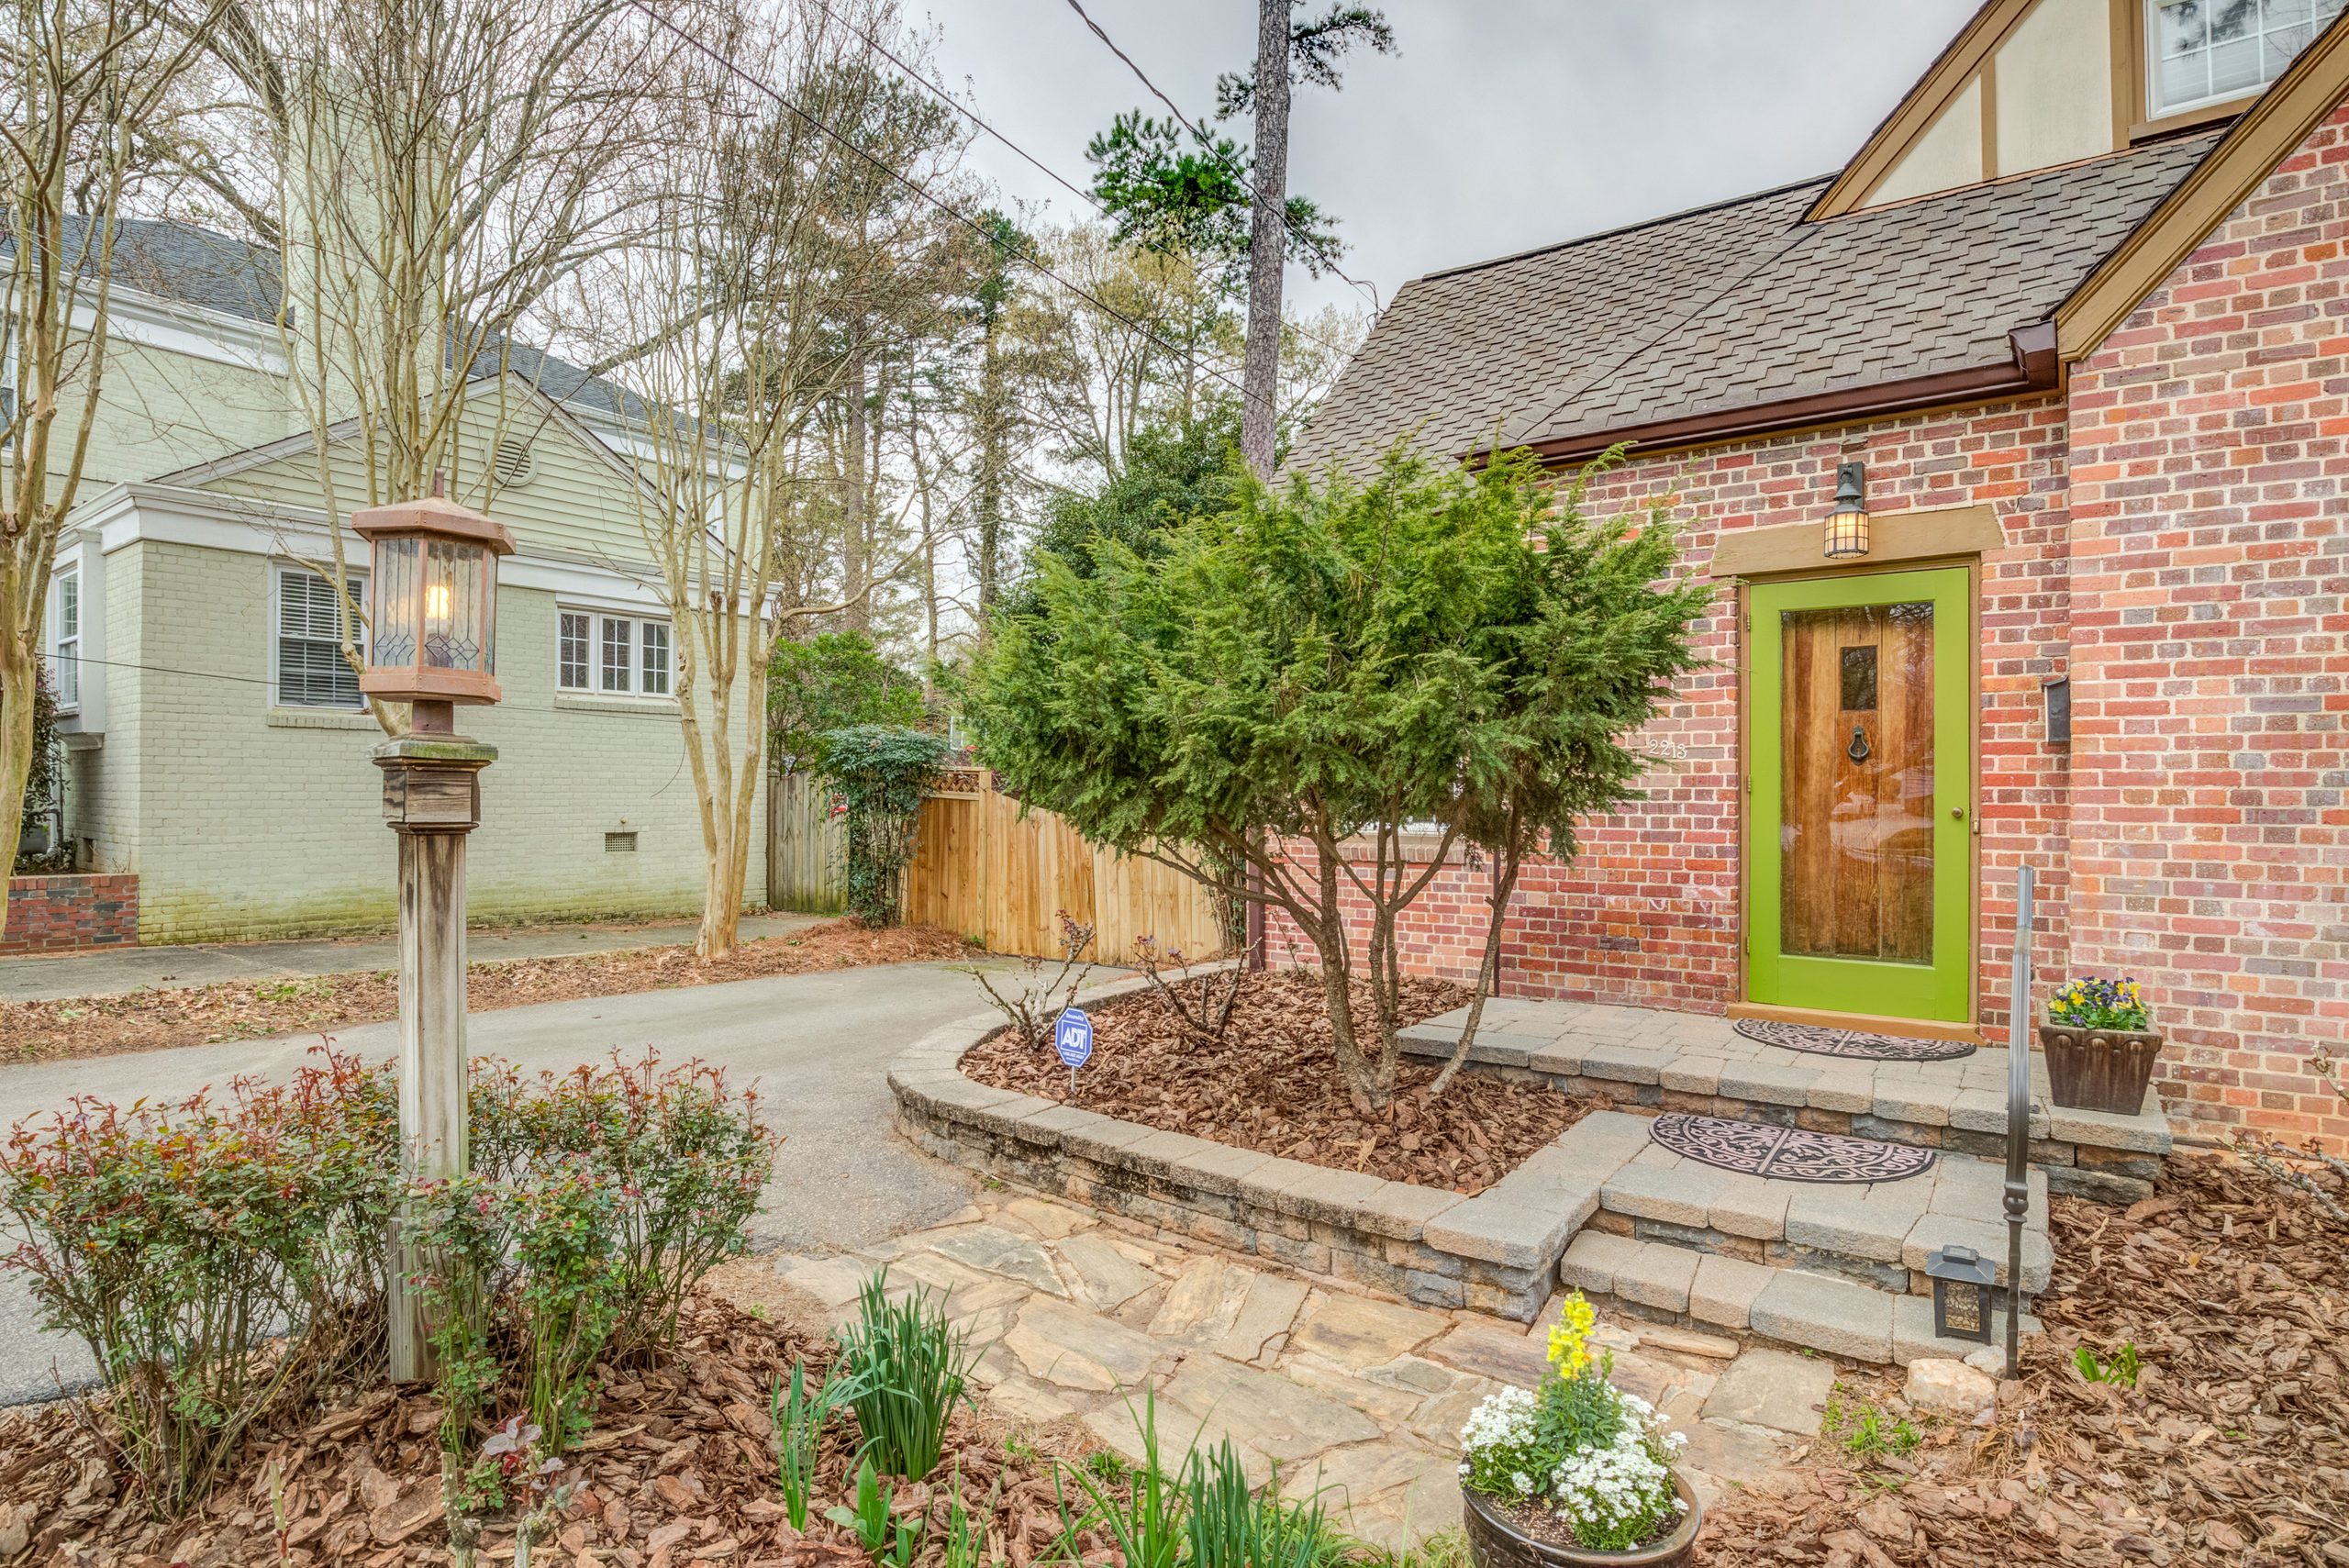 2213 St. Mary's St Raleigh NC 27608 – 3,505 Sq Ft Charmer ITB